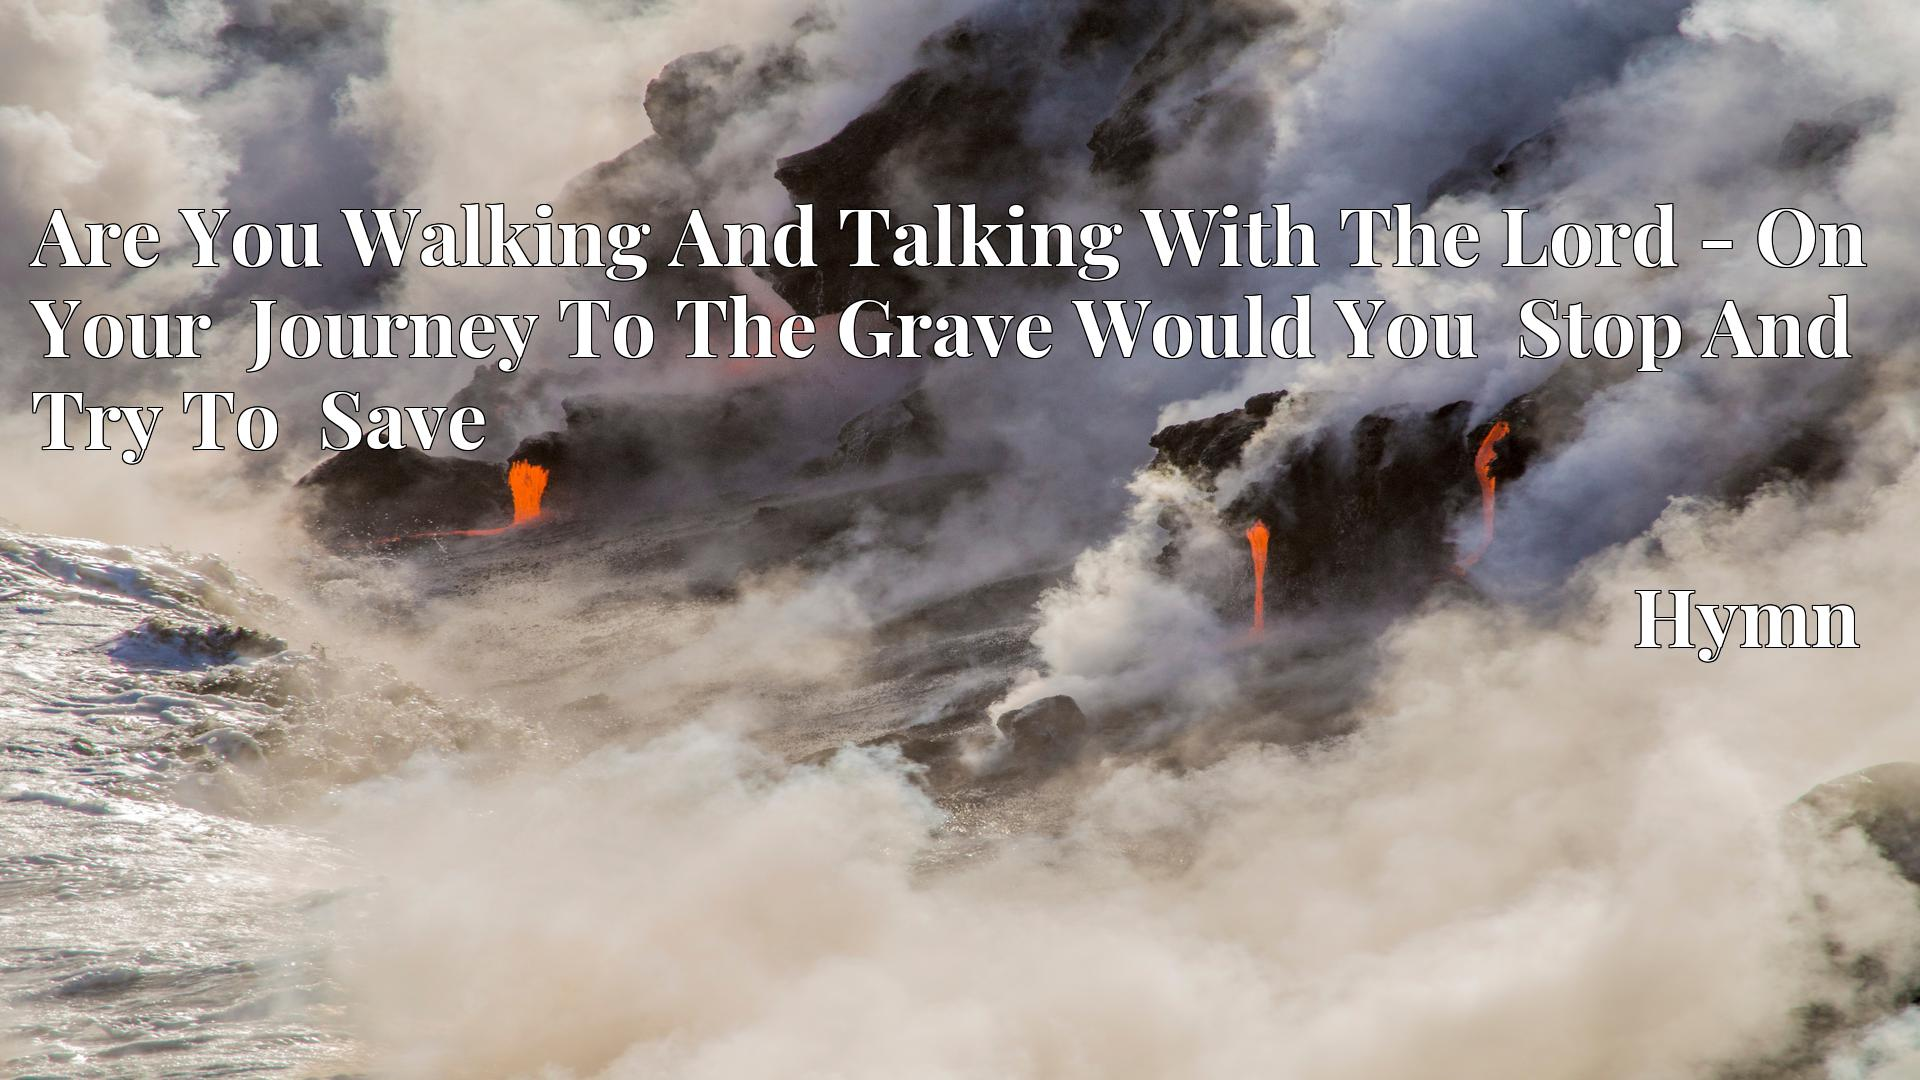 Are You Walking And Talking With The Lord - On Your  Journey To The Grave Would You  Stop And Try To  Save - Hymn